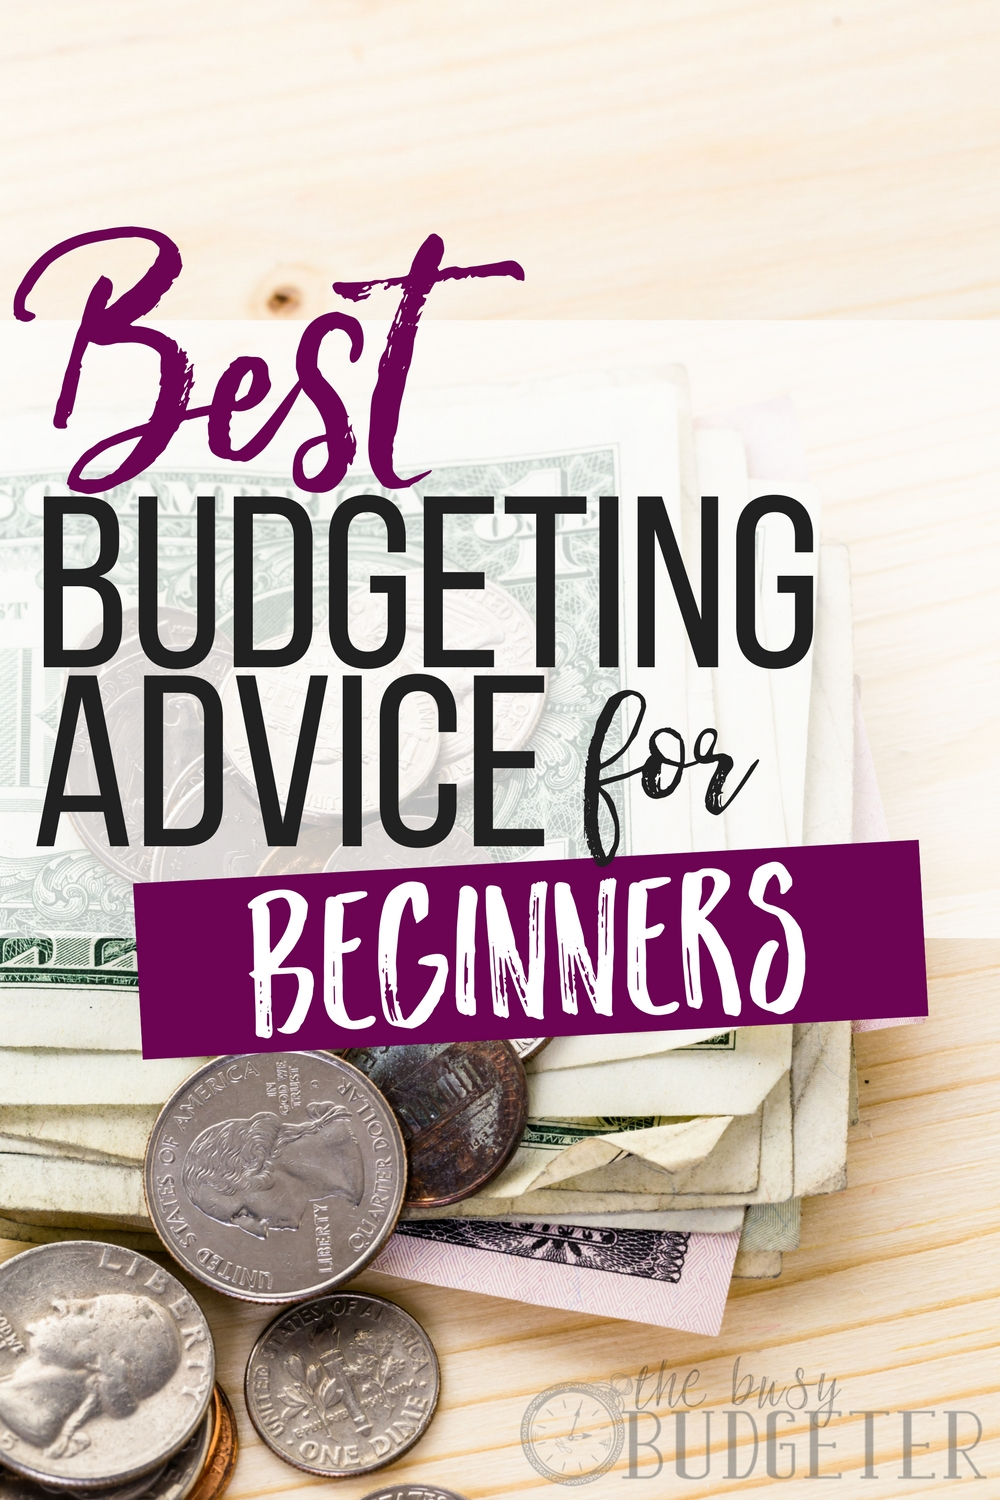 Best budgeting advice for beginners indeed! I was a litttle skeptical thinking it would just talk about the need to save, but this actually had step by step actions to save money and tackle that budget that I can take to help me stick to my budget. Great article!